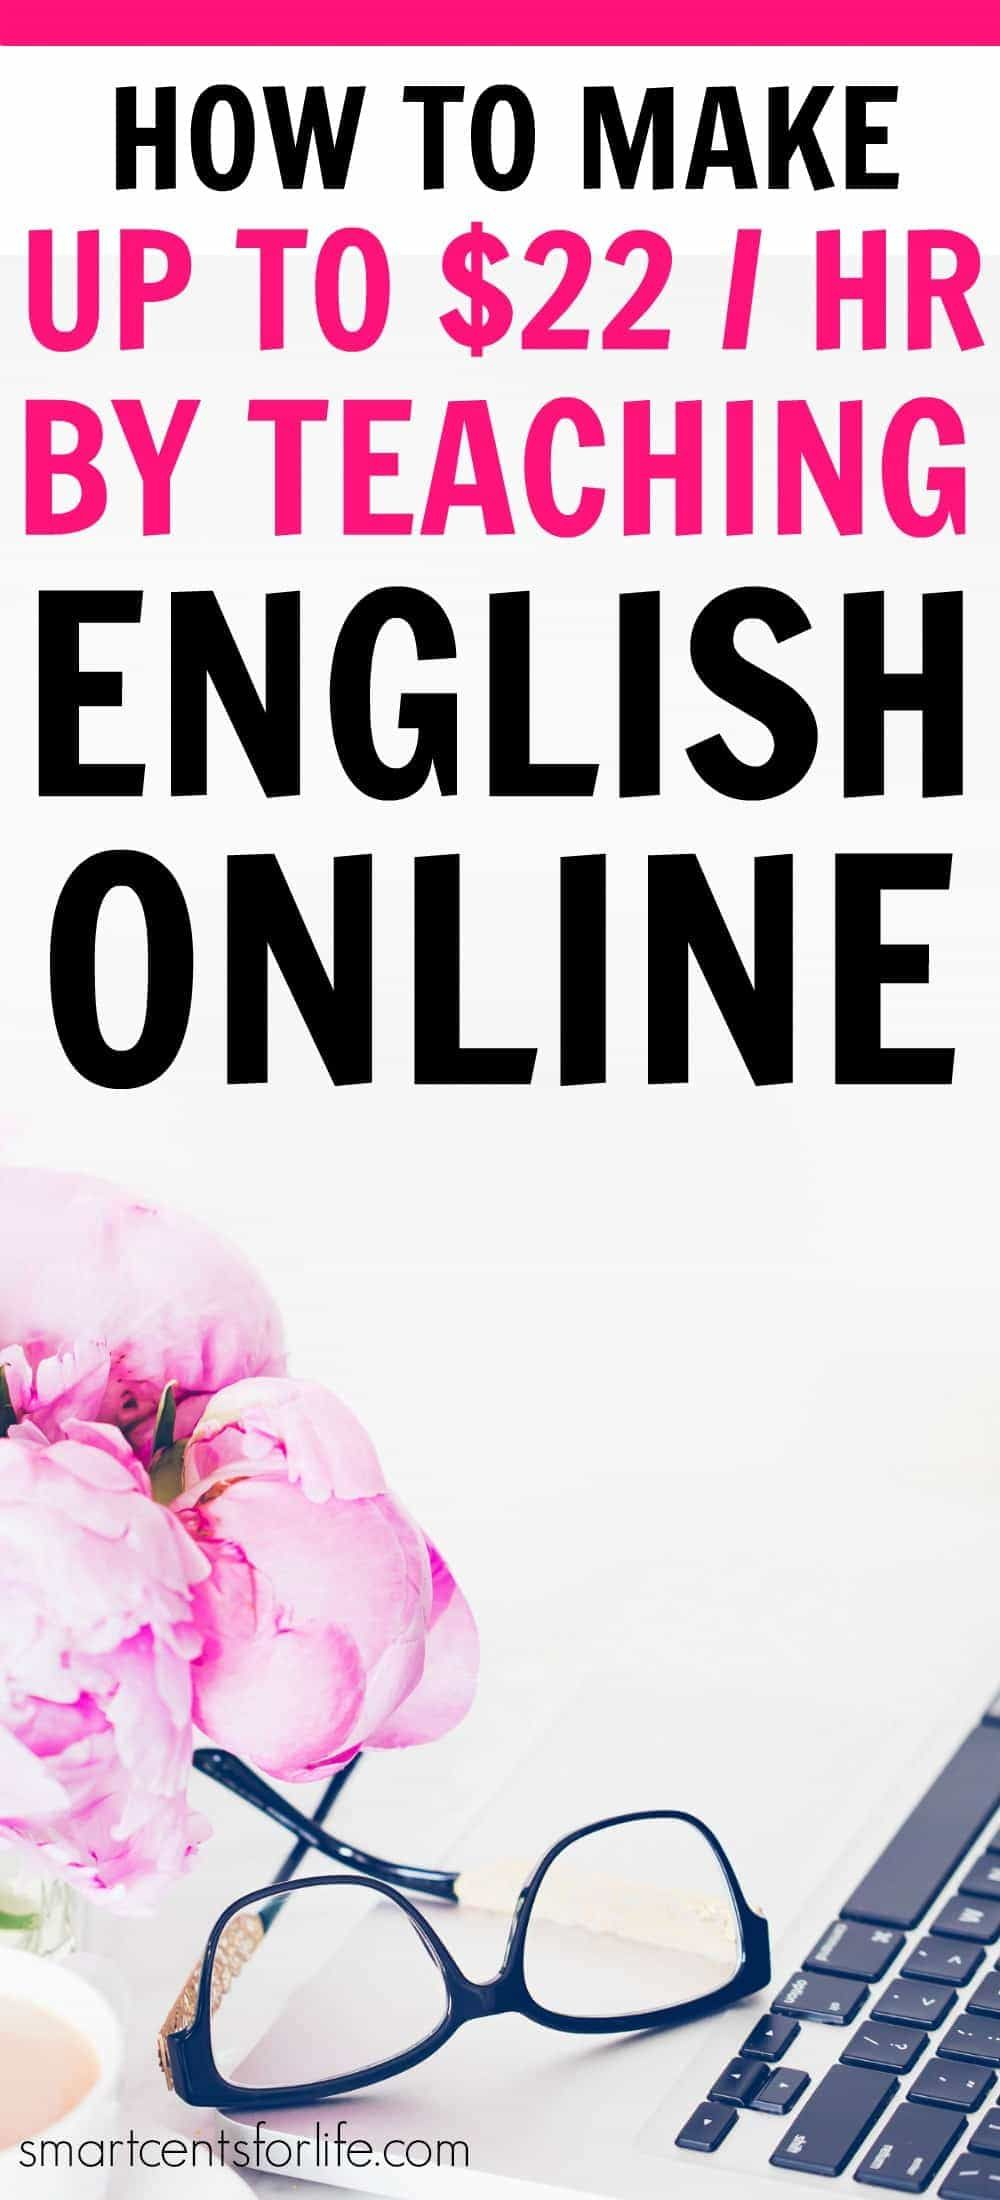 How To Make Up To $22 An Hour By Teaching English Online | Online ...